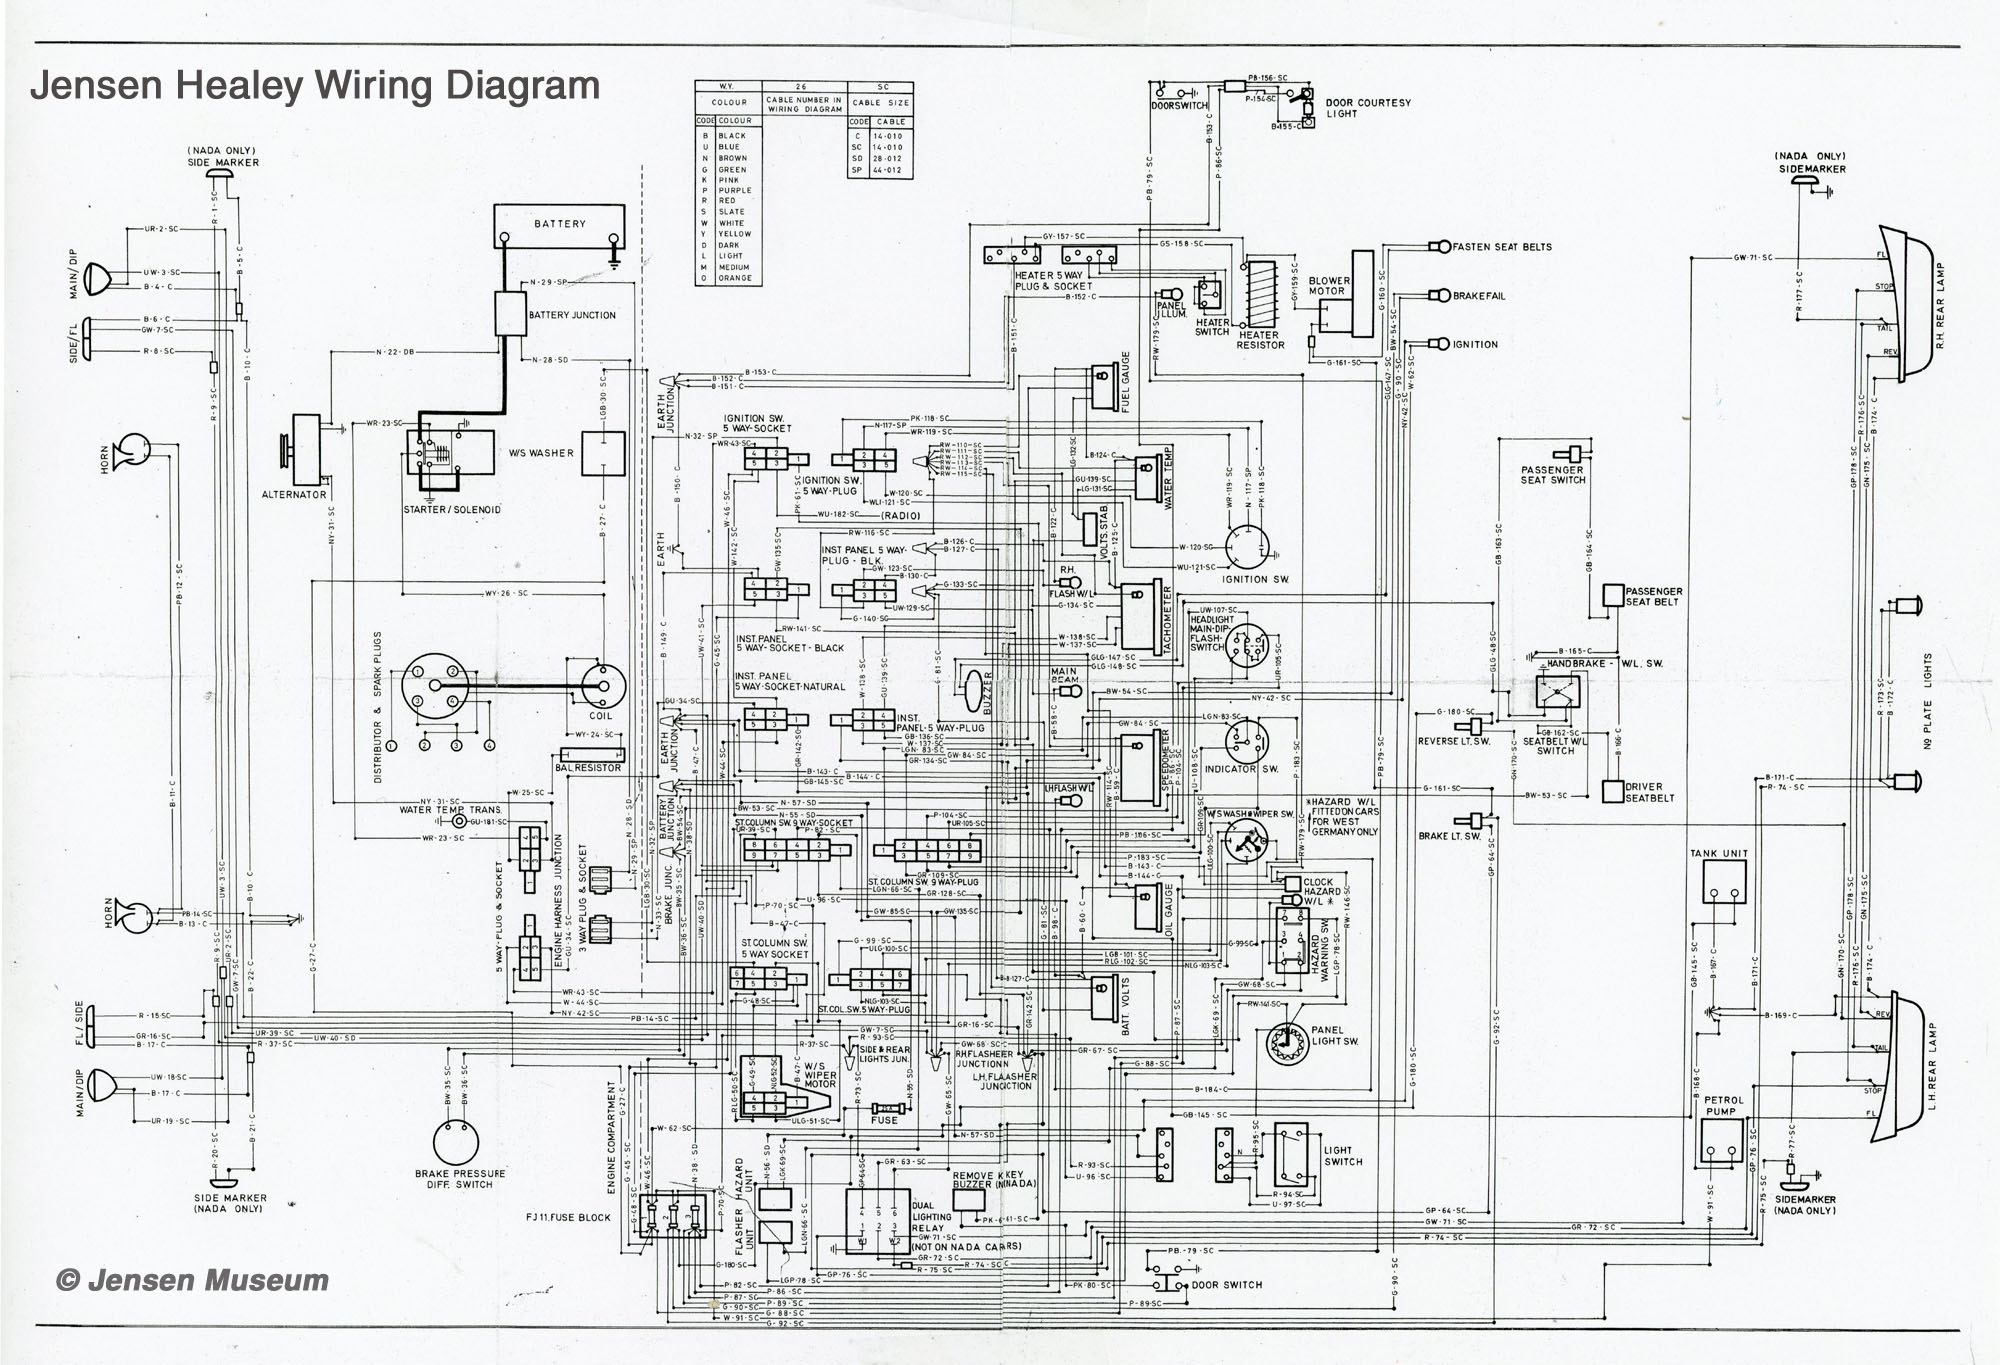 Jensen Healey Electrical Diagrams. design and engineering the jensen  museum. jhps jensen healey wiring diagram. jensen healey wiring diagram  jhps. jensen interceptor iii h series wiring diagram sandro. jensen 541 s  wiring2002-acura-tl-radio.info